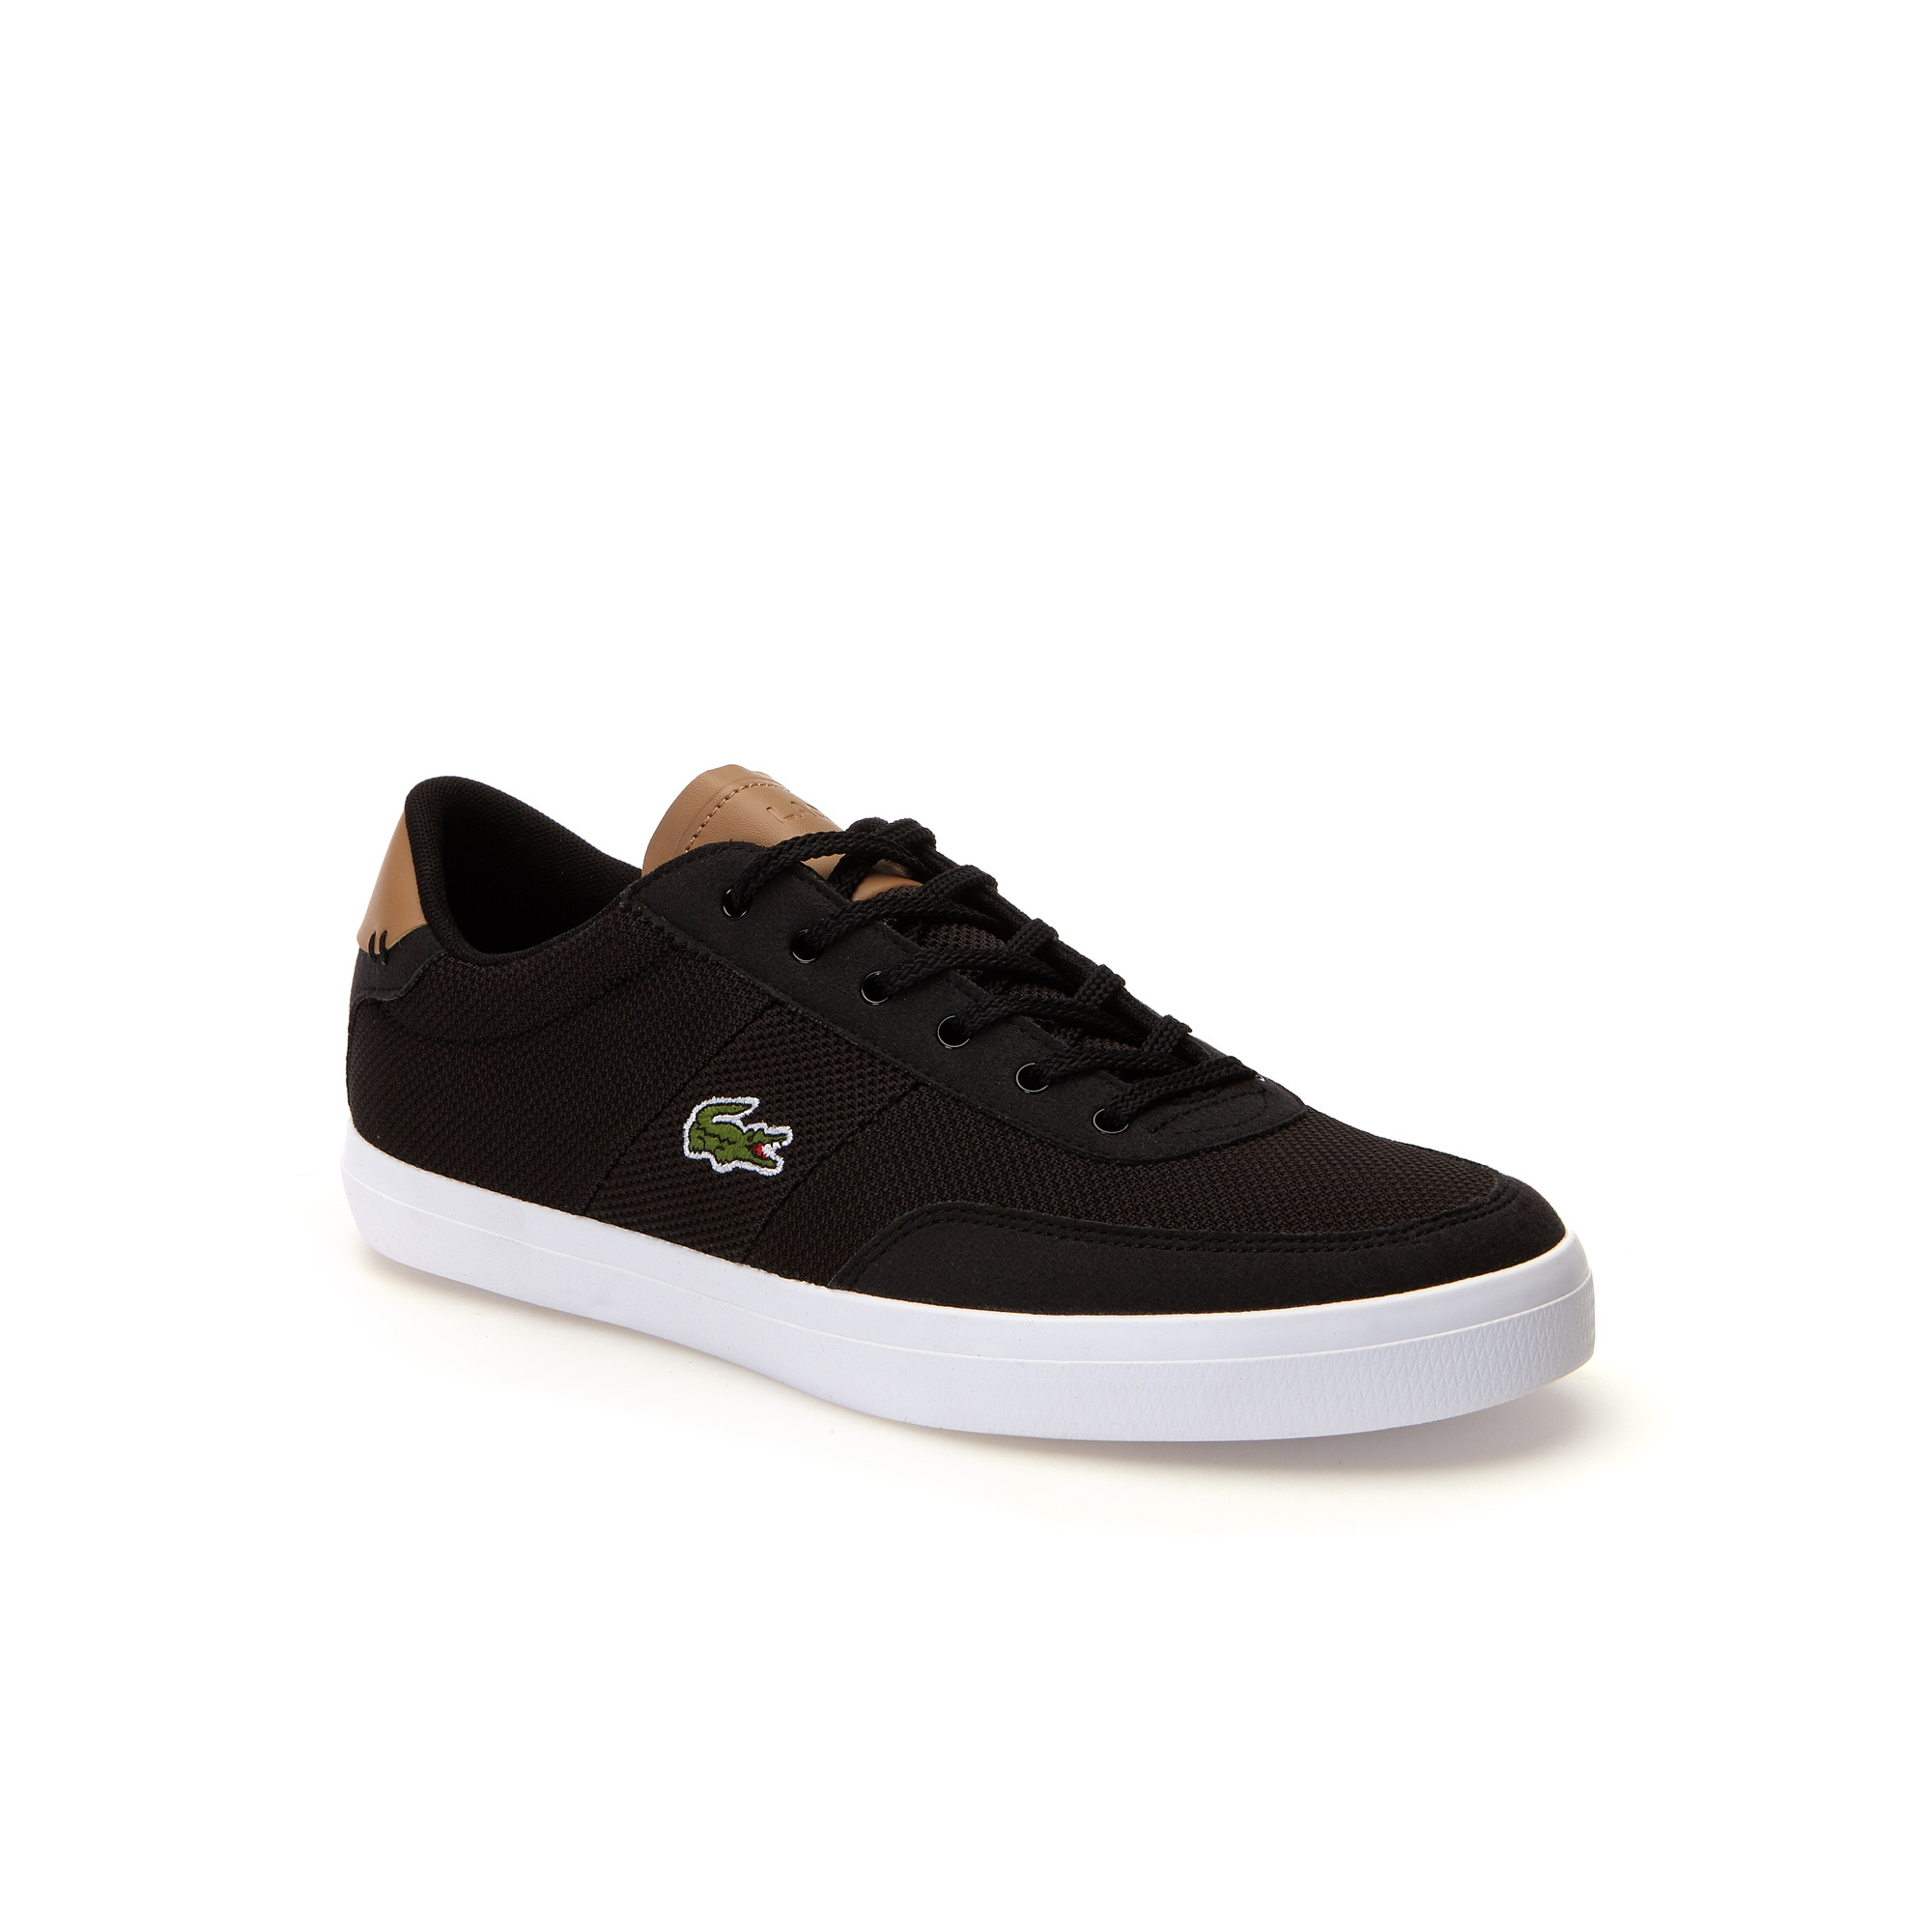 Men's Court-Master Suede Knit Trainers